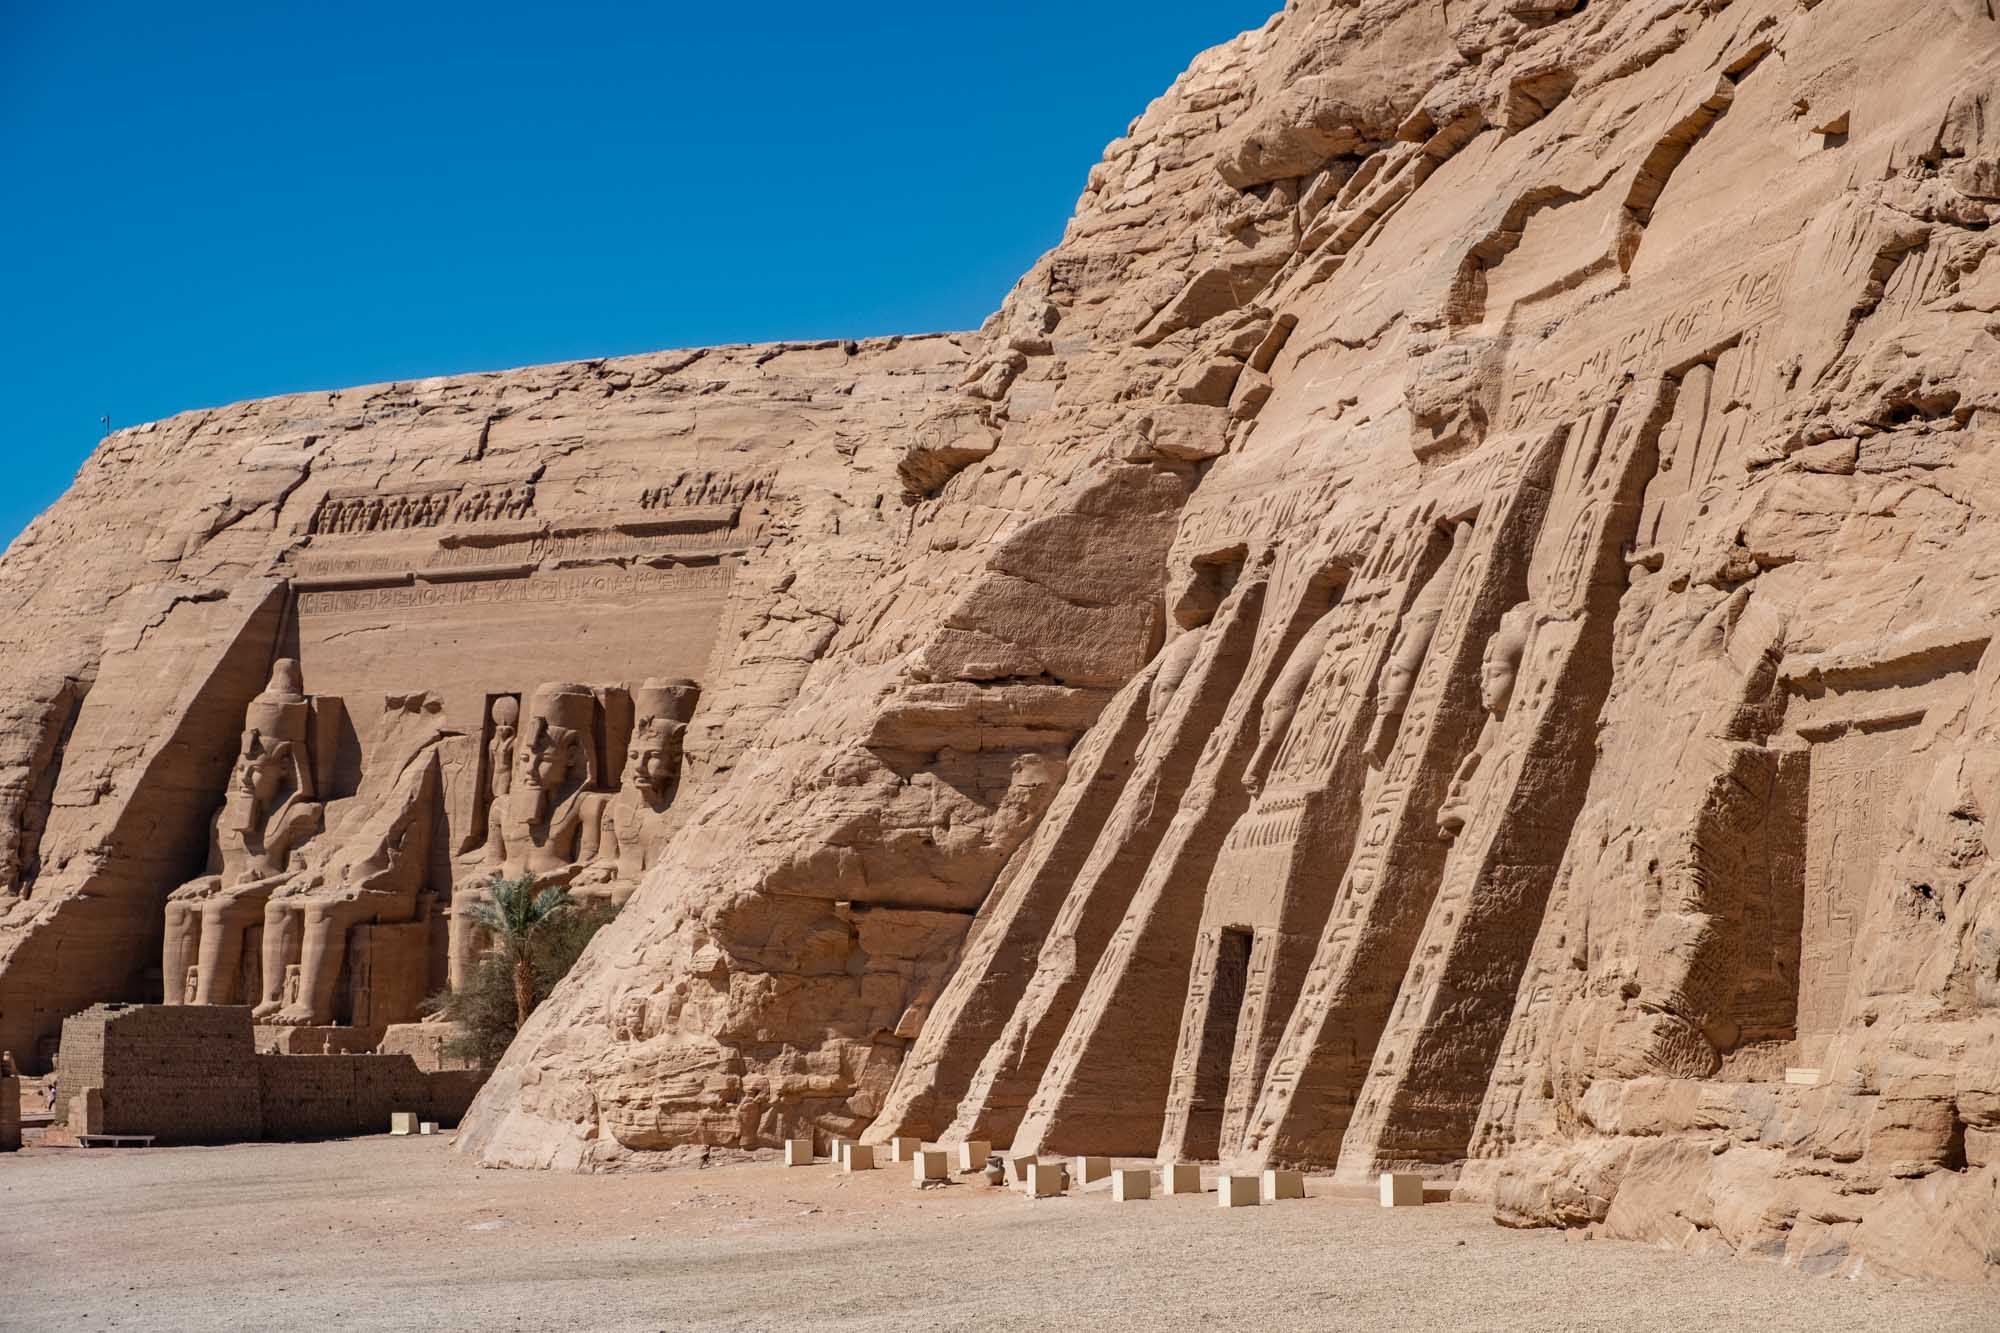 The Two Temples of Abu Simbel